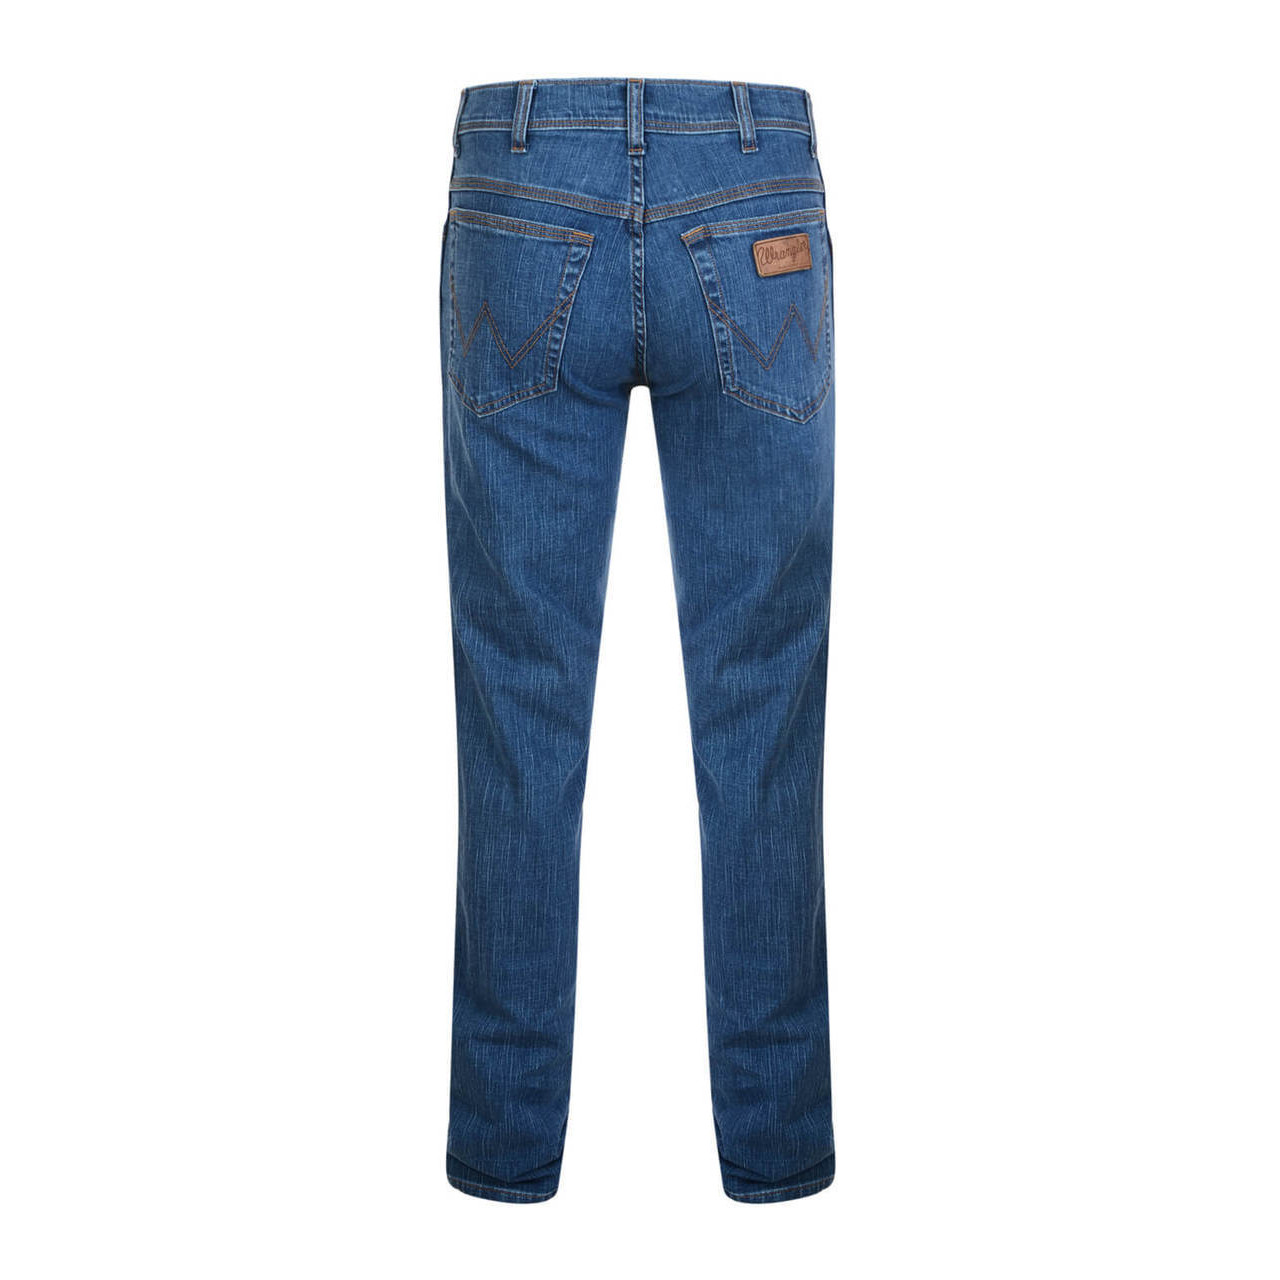 Wrangler Texas Stretch Denim Jeans New Reef Blue | Jean Scene